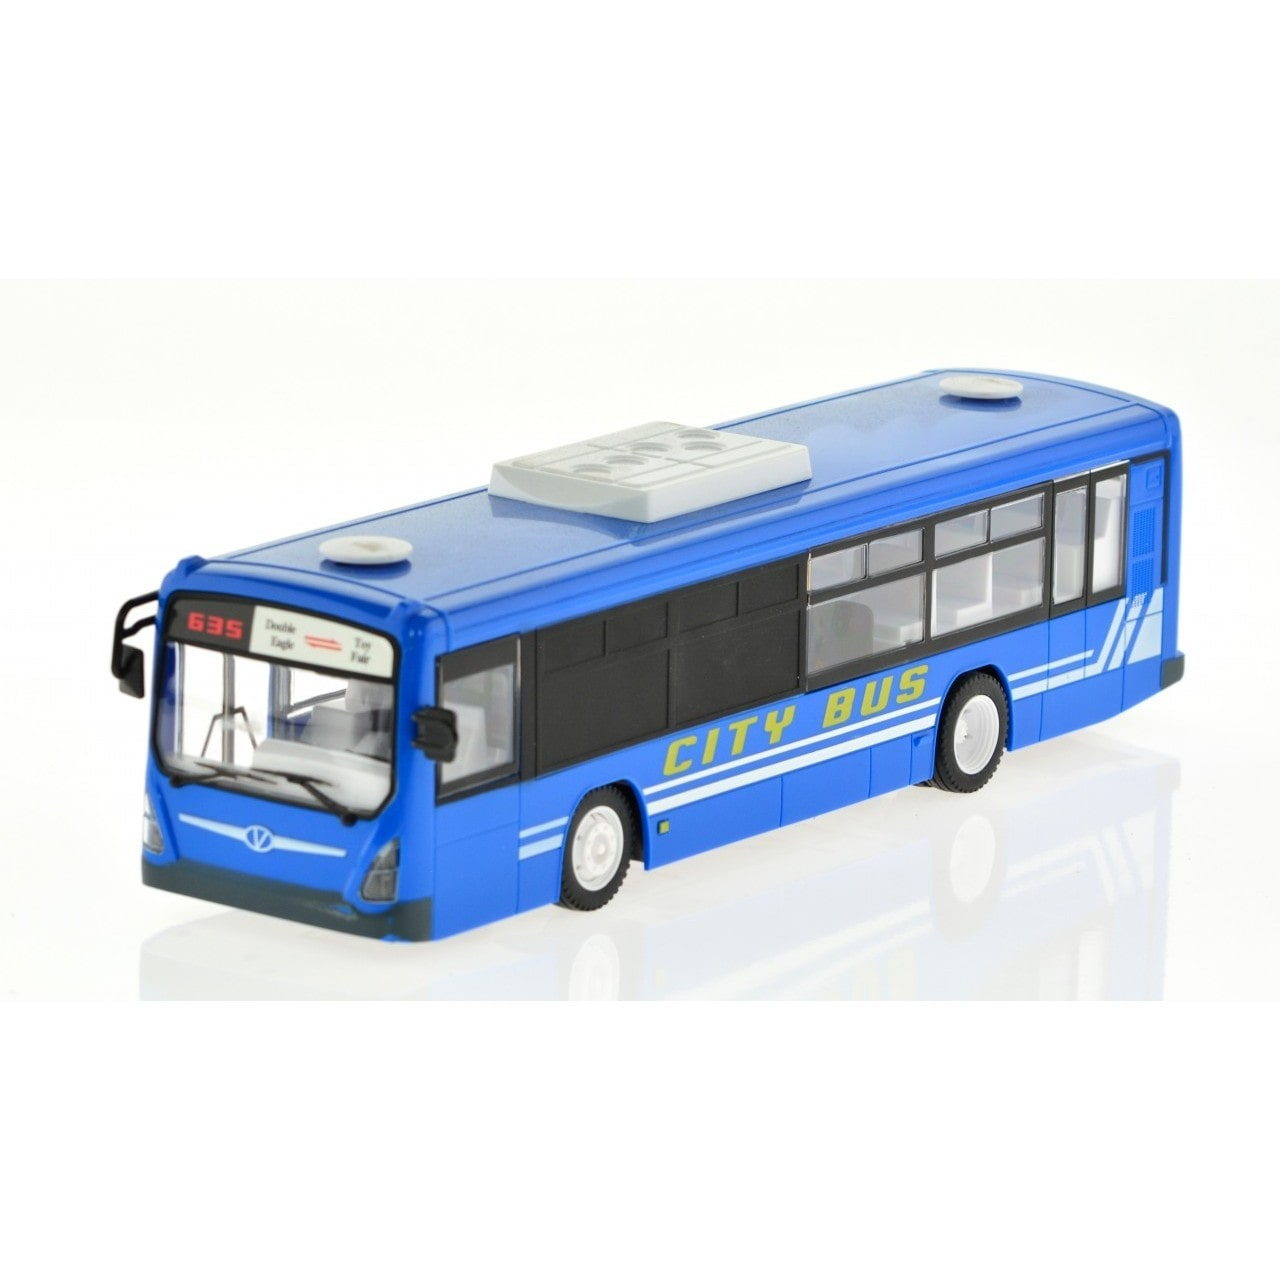 CIS 2.4 GHz Remote-control Bus With Opening Doors